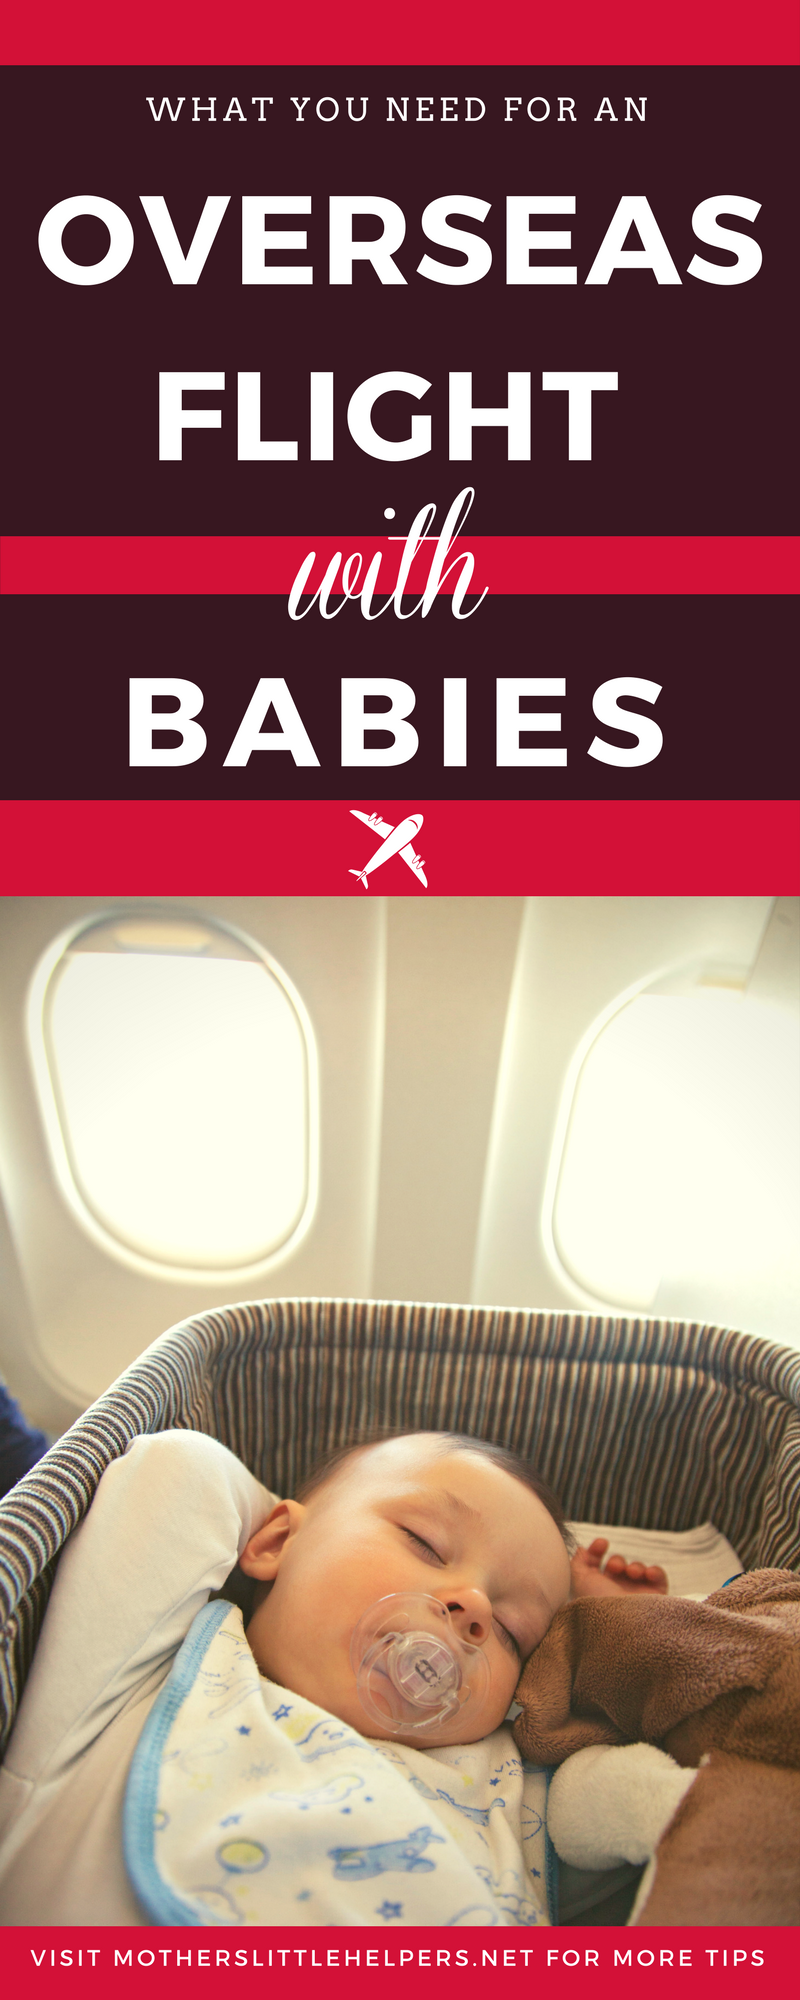 """Anxious about your upcoming long haul flight with Baby? Read """"How to Make the Best of an Overseas Flight with Babies"""" and get your FREE CARRY-ON CHECKLIST so you don't forget a thing! 